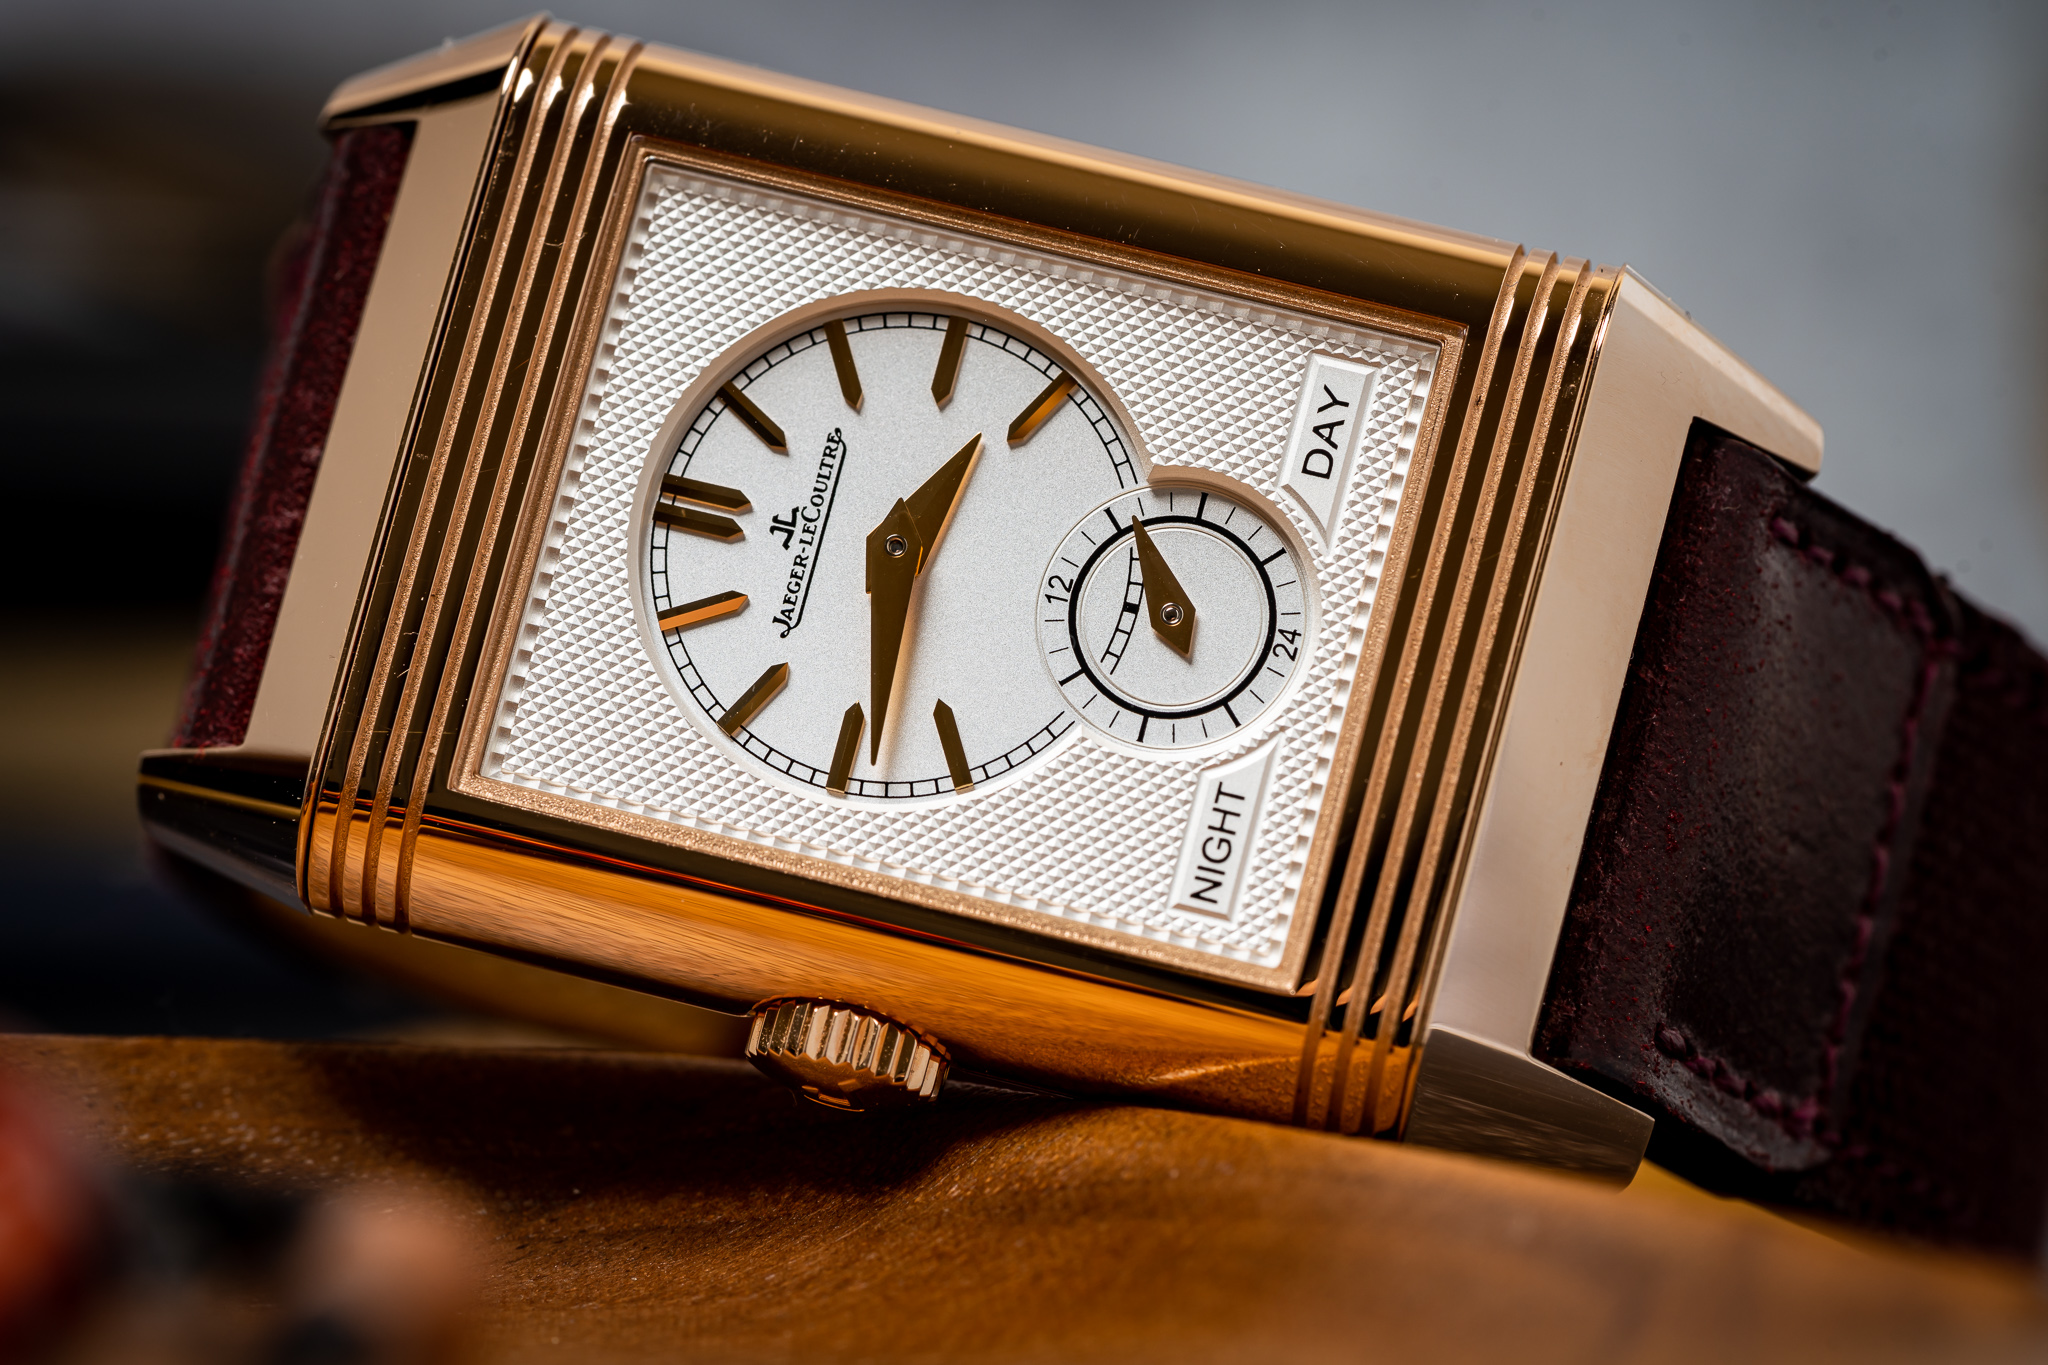 Jaeger-LeCoultre Reverso Tribute Duoface Fagliano Hands-On